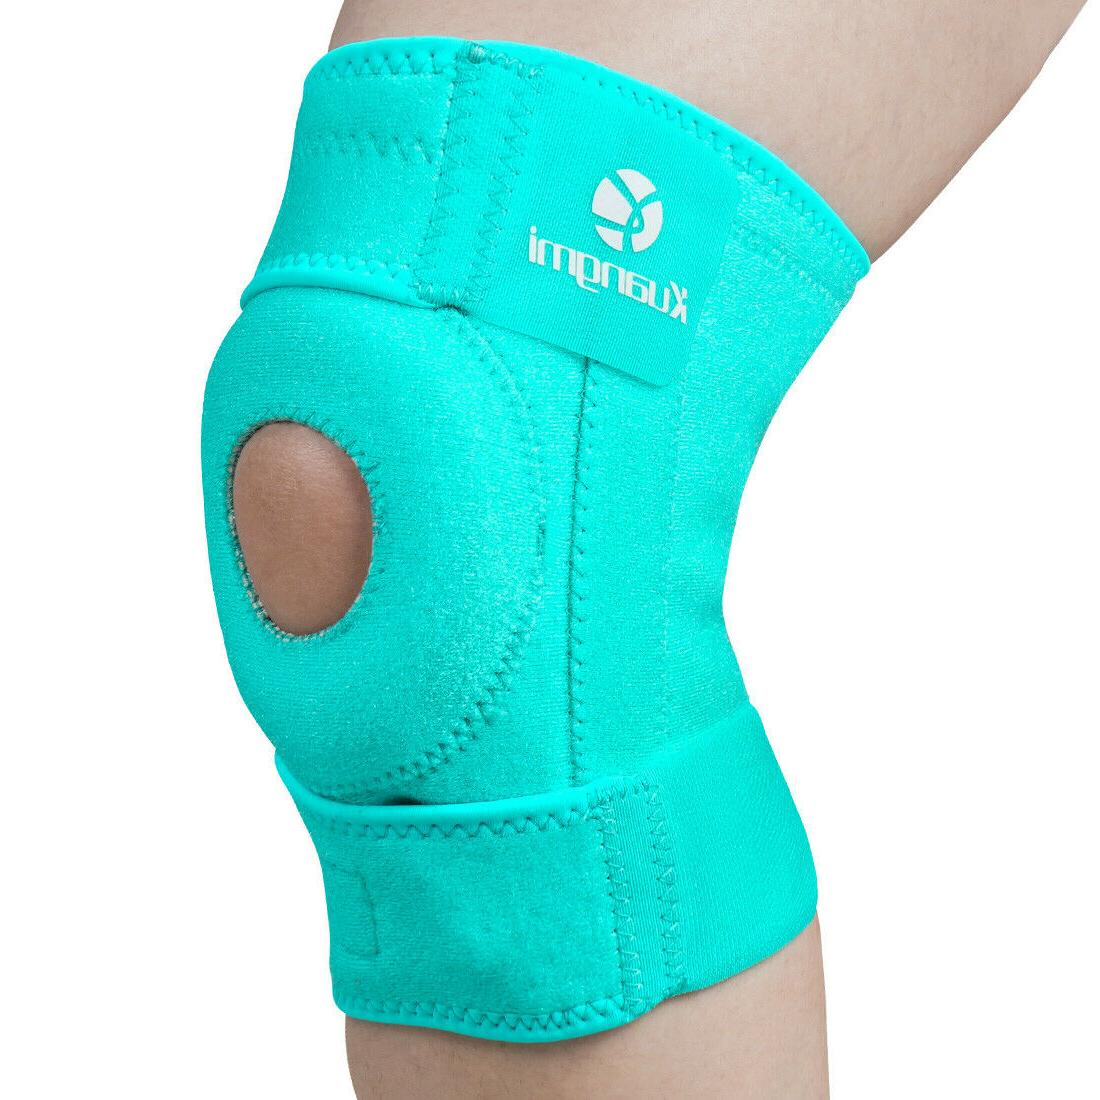 Kuangmi Adjustable Open Patella Injury Pain Relief 1Pc